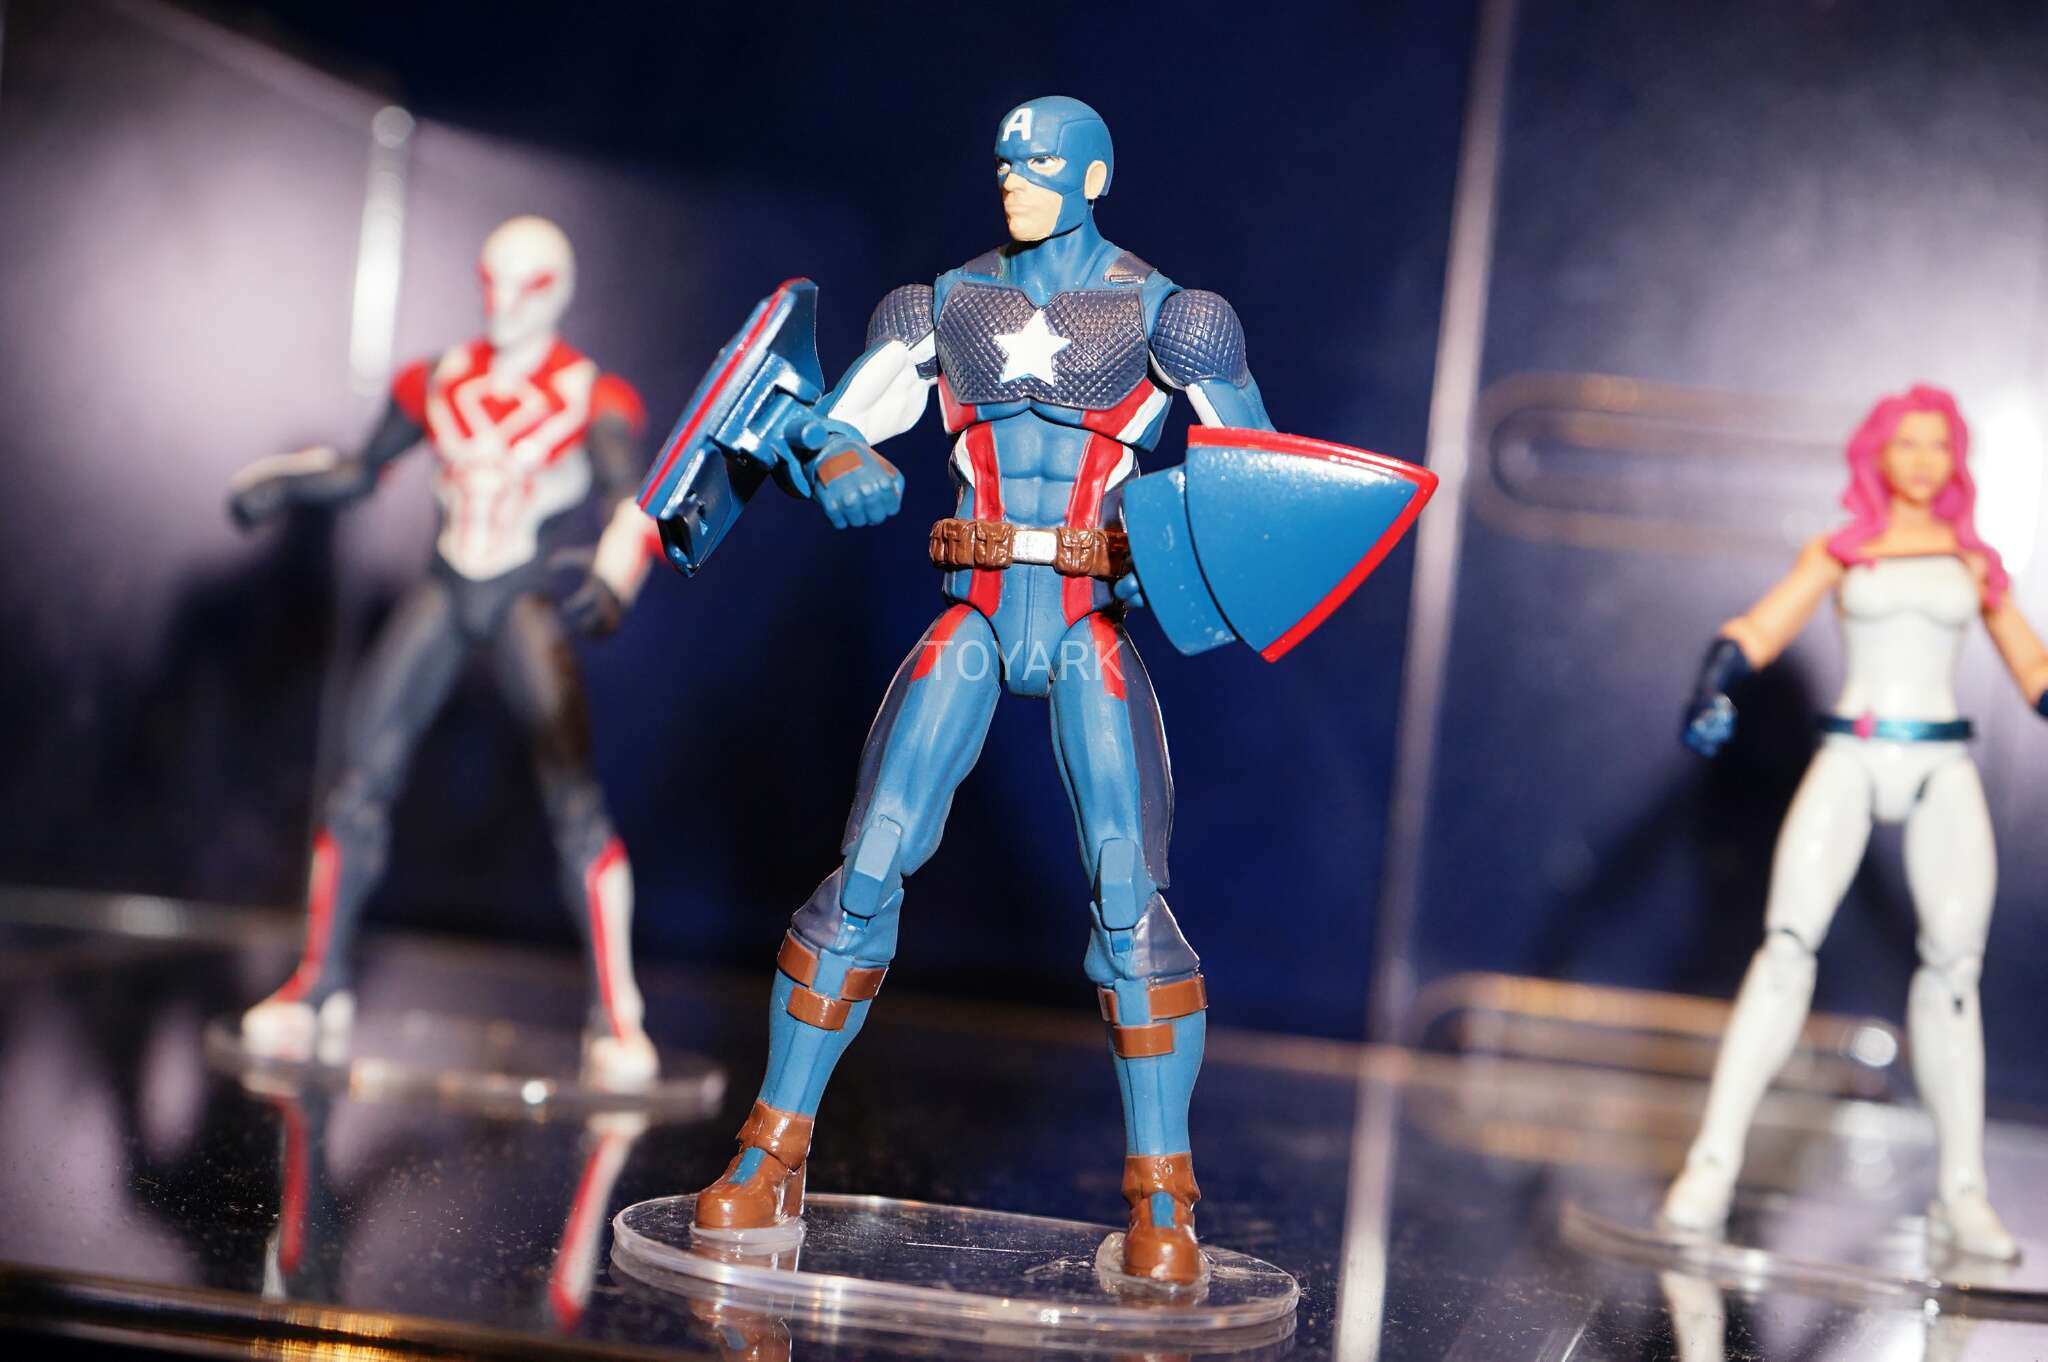 Toy-Fair-2017-Hasbro-Marvel-156.jpg